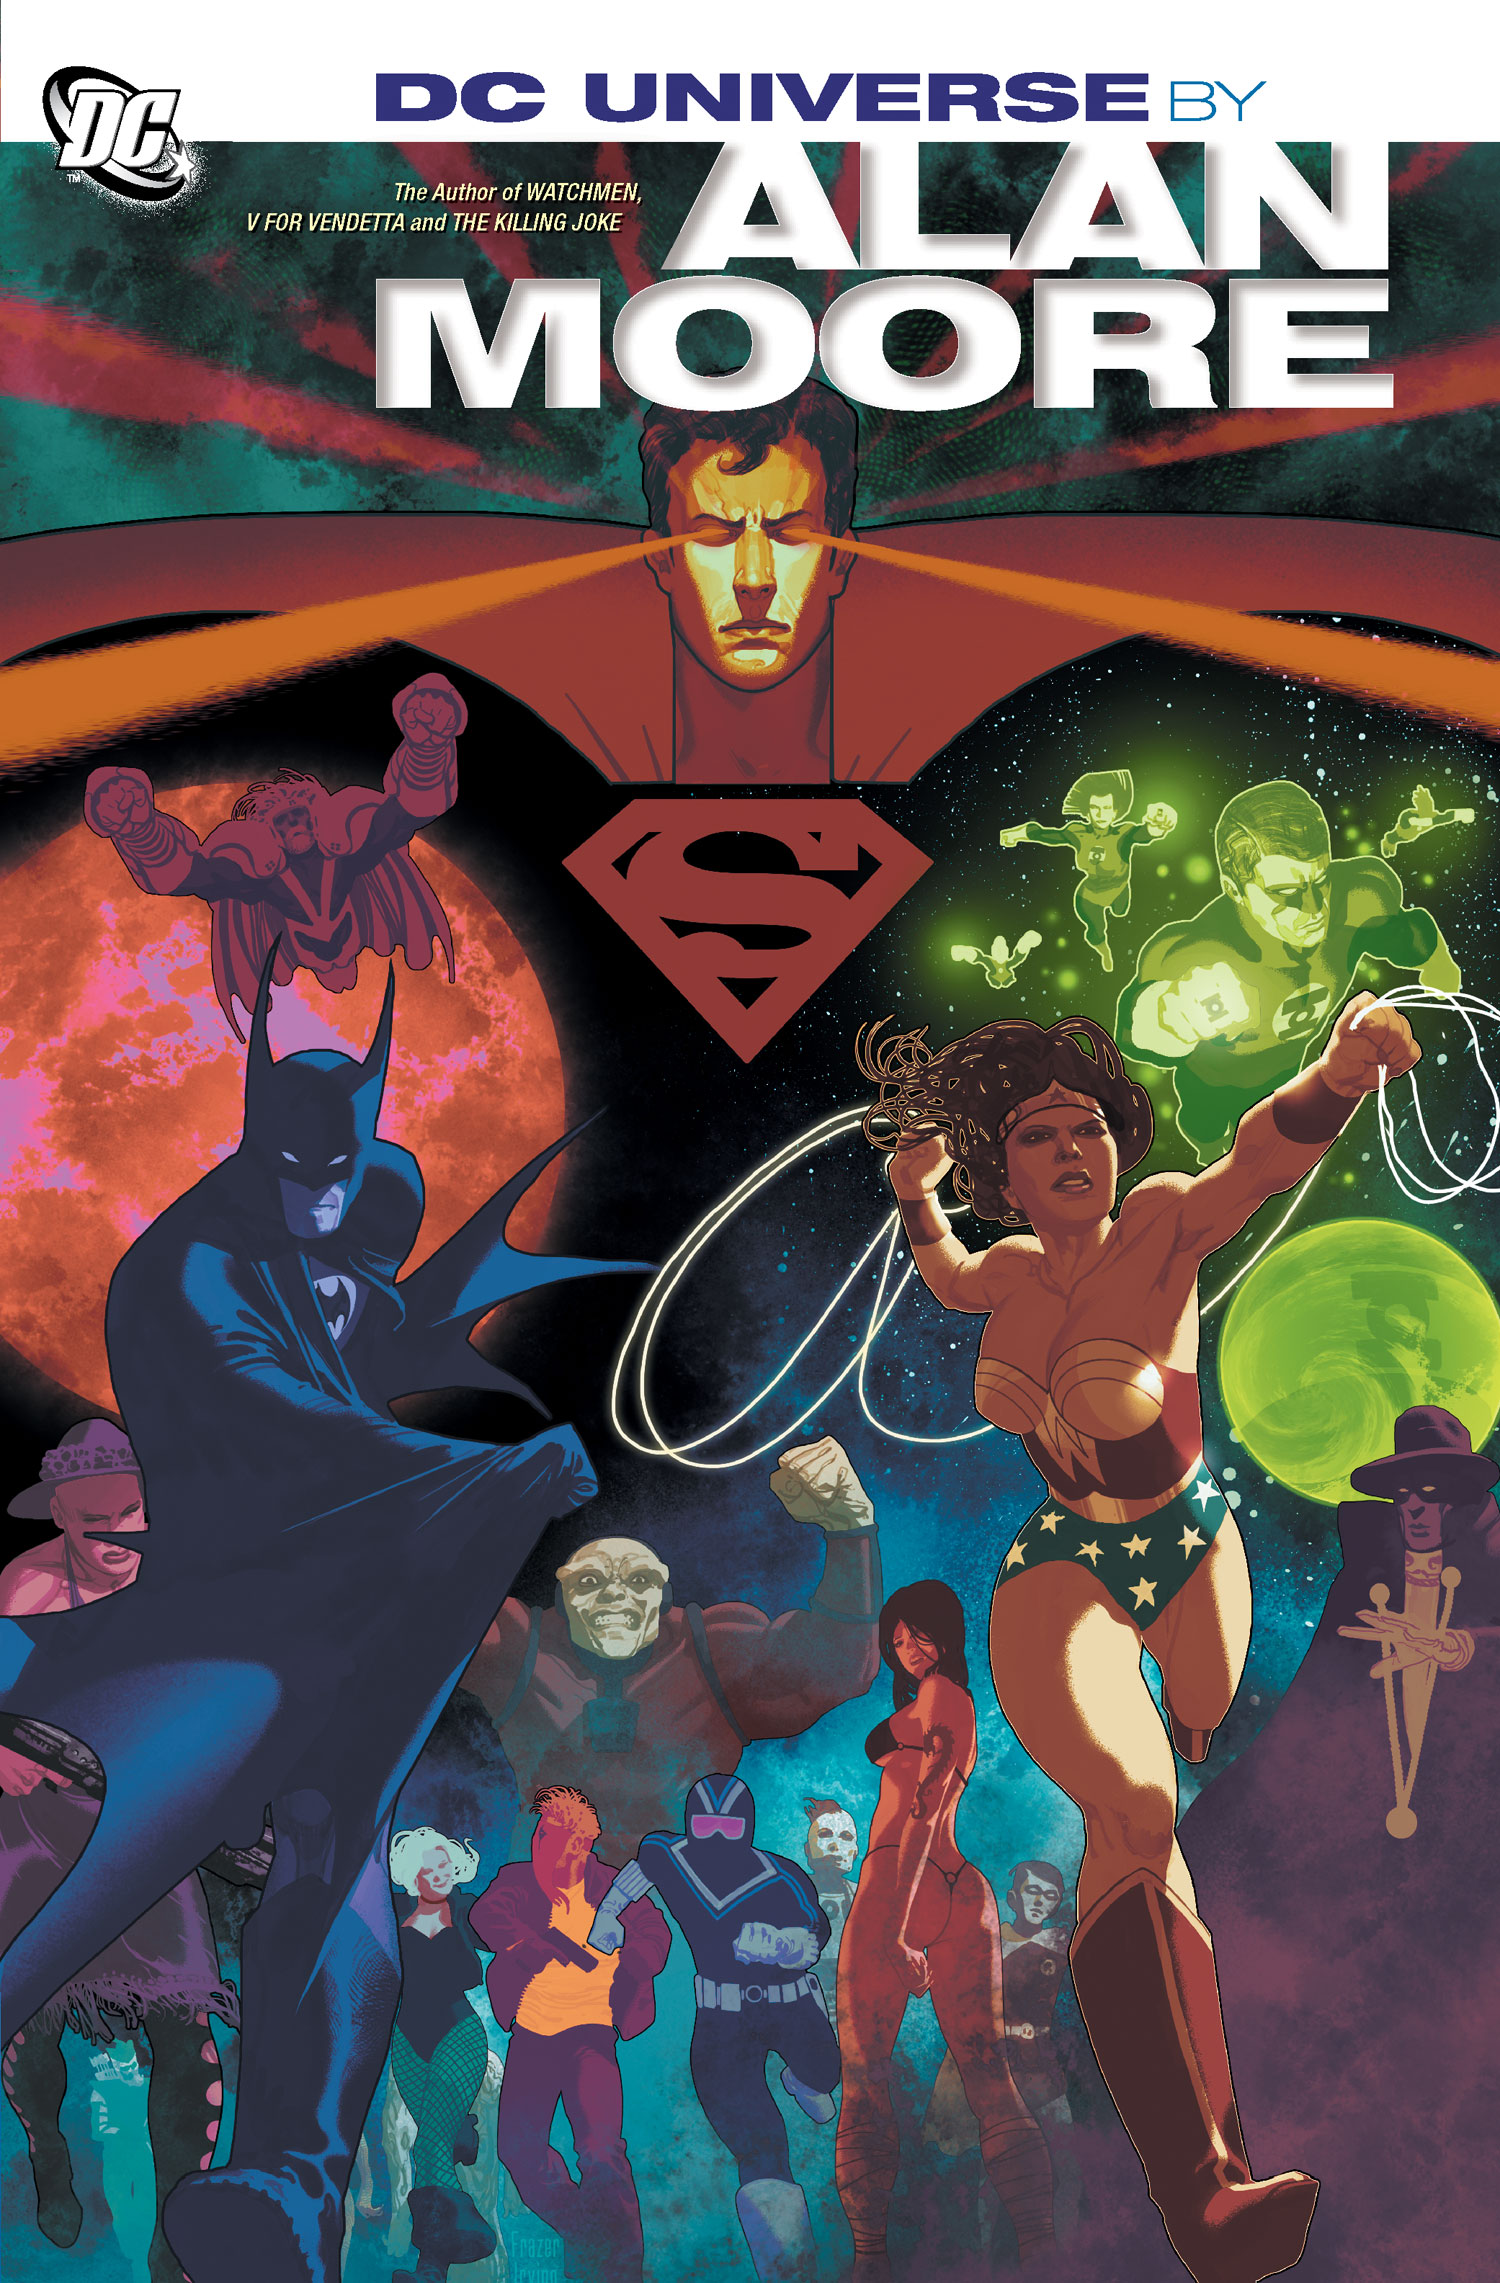 DCU by Alan Moore Graphic Novel Review: DC Universe by Alan Moore (2013)